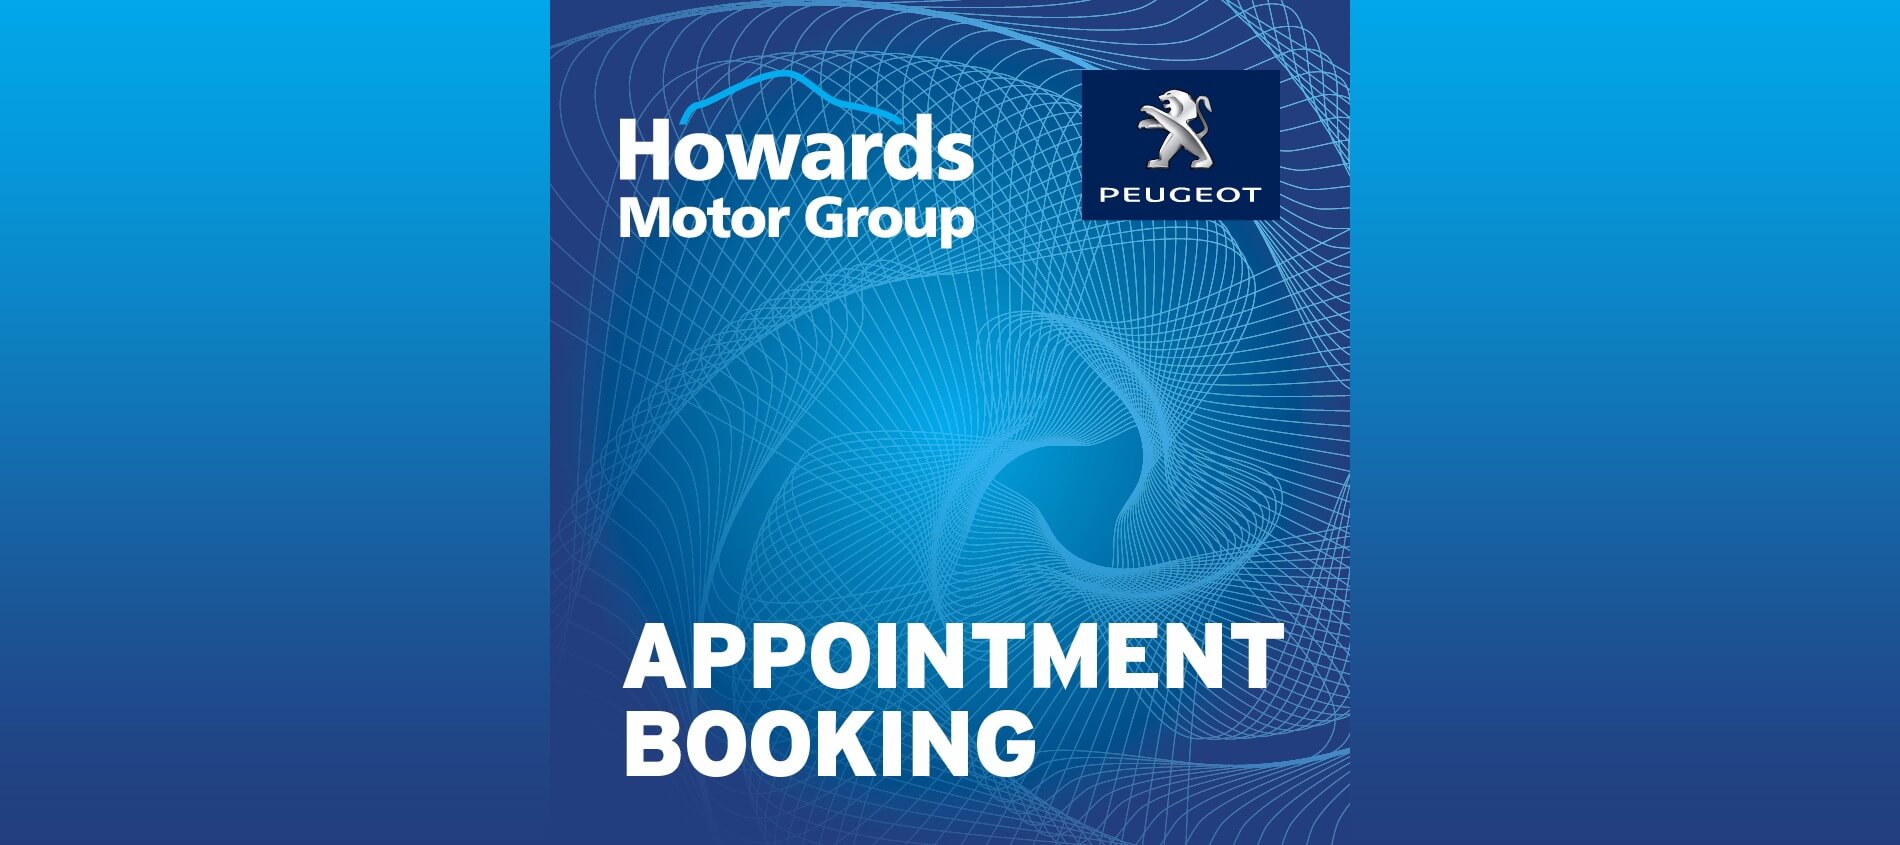 peugeot-appointment-booking-form